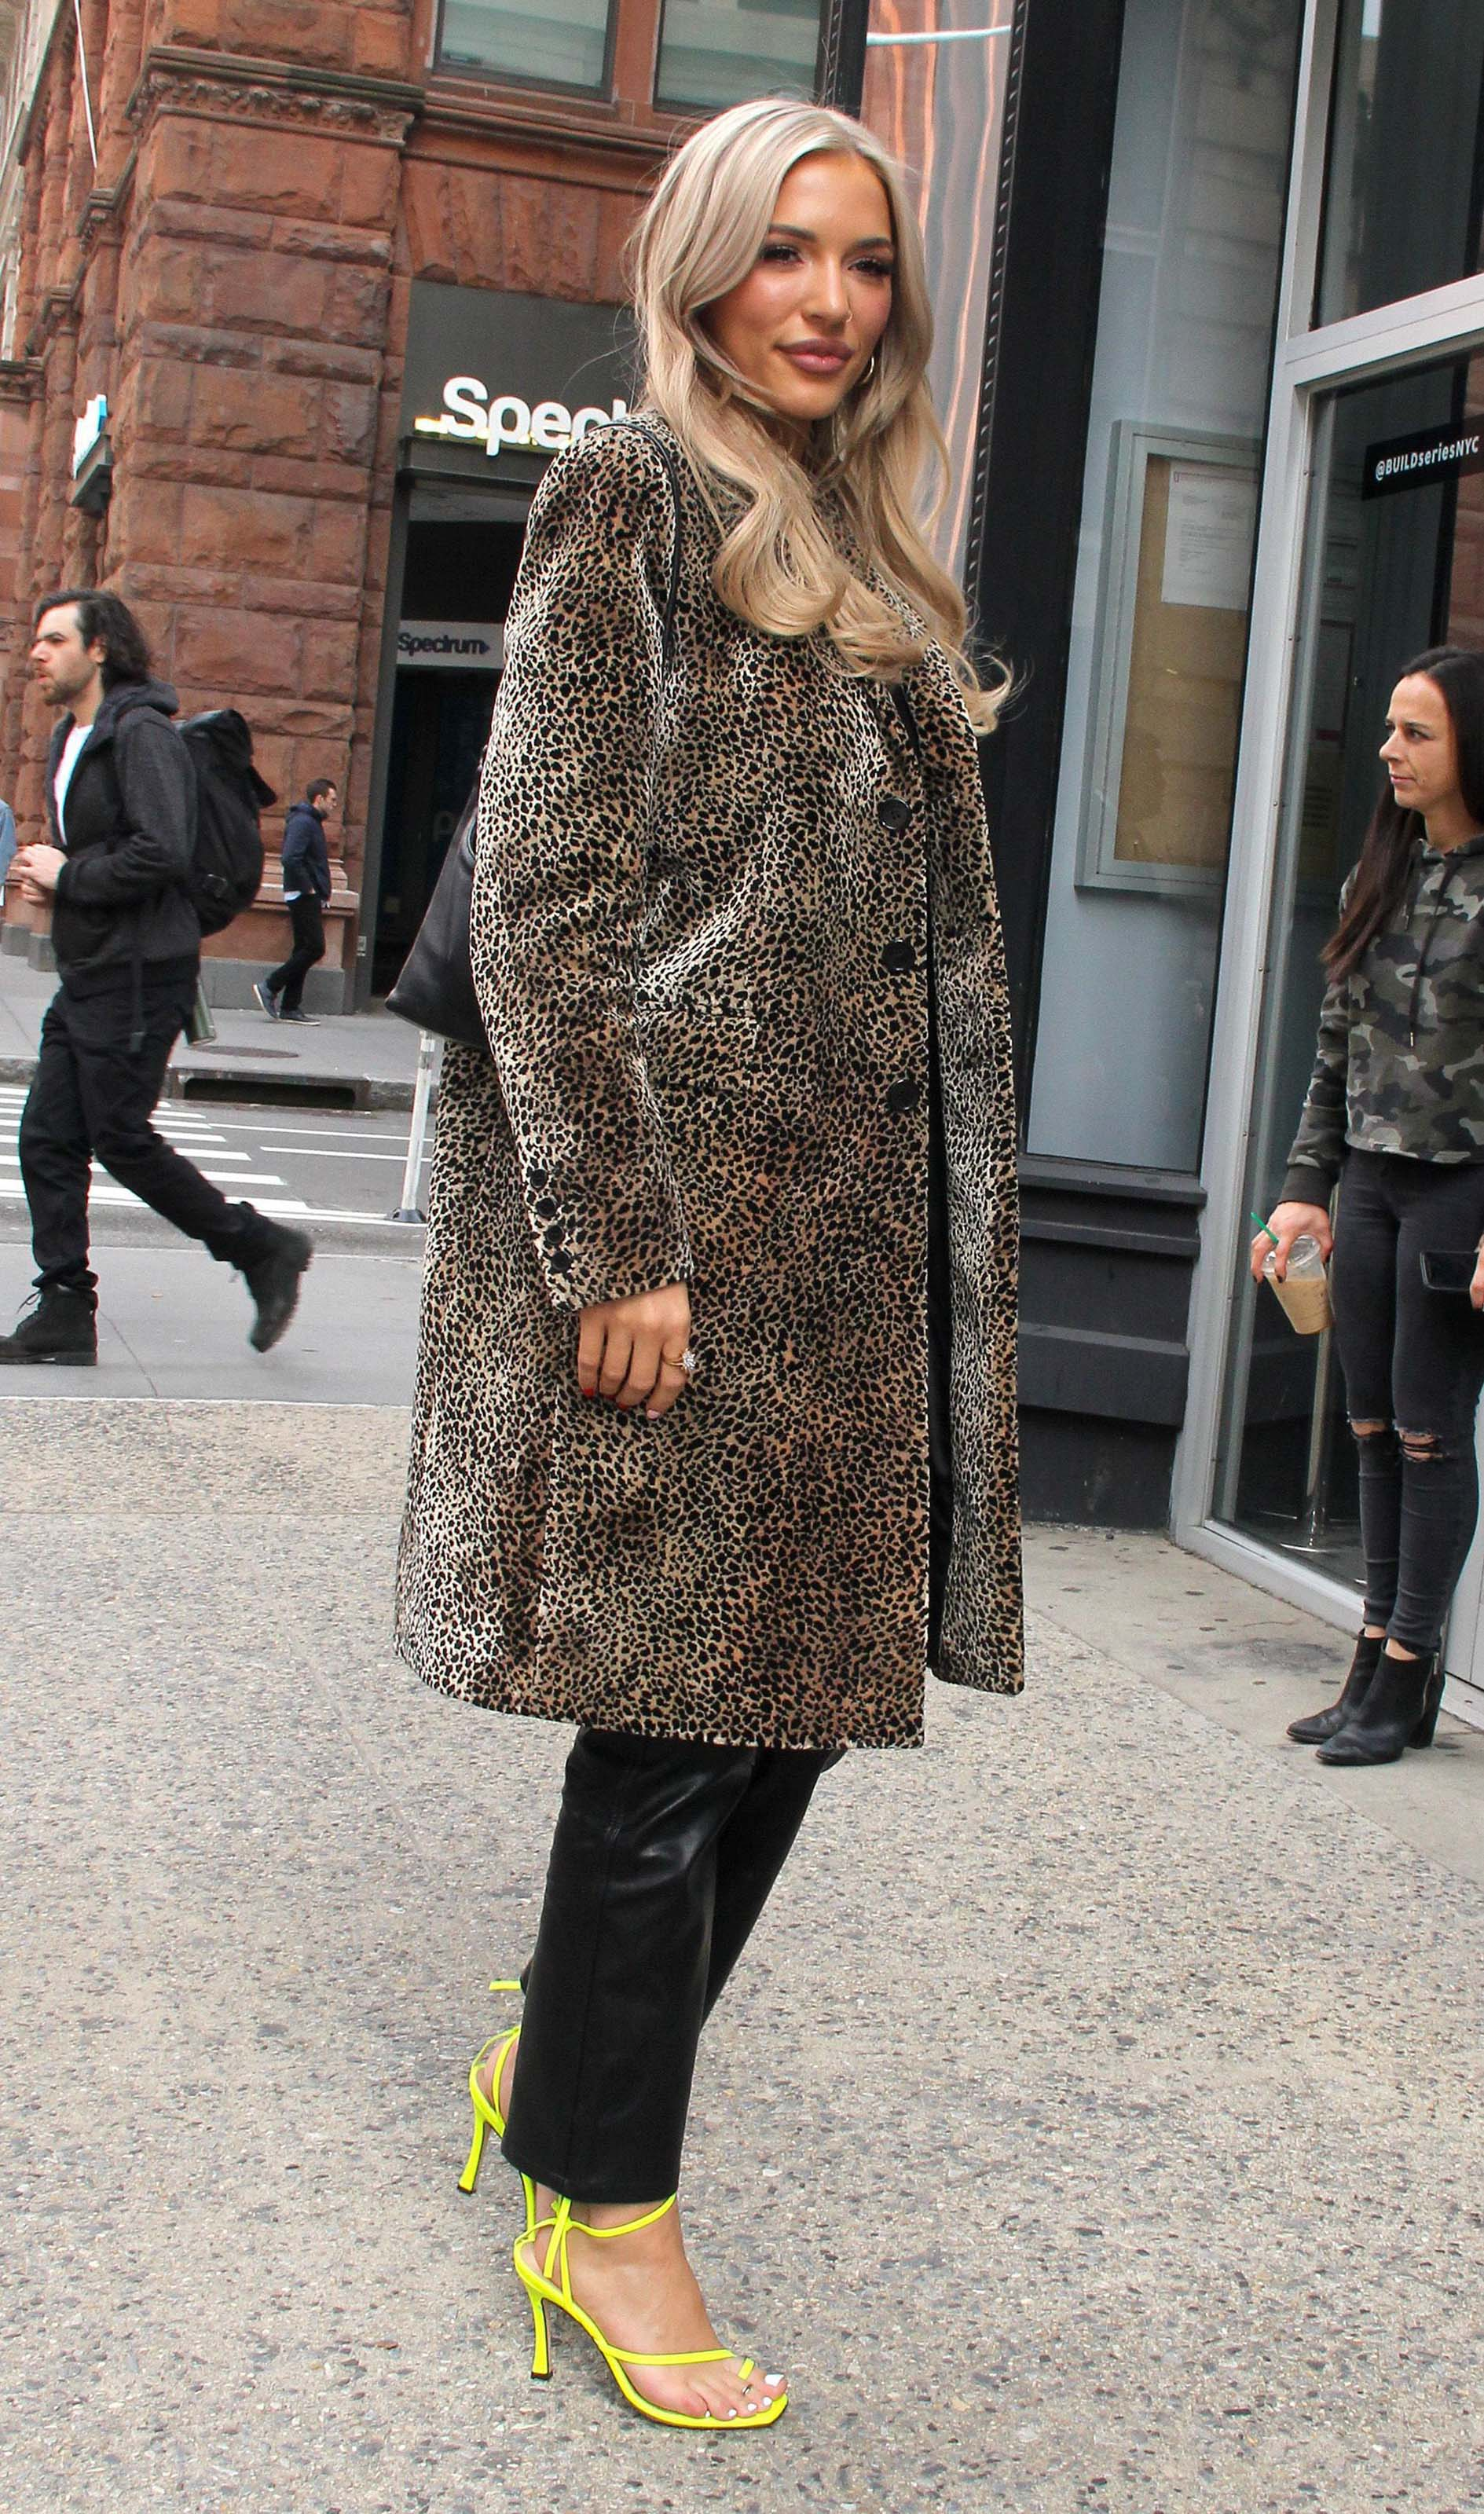 Lennon Stella arrives at the Build Series